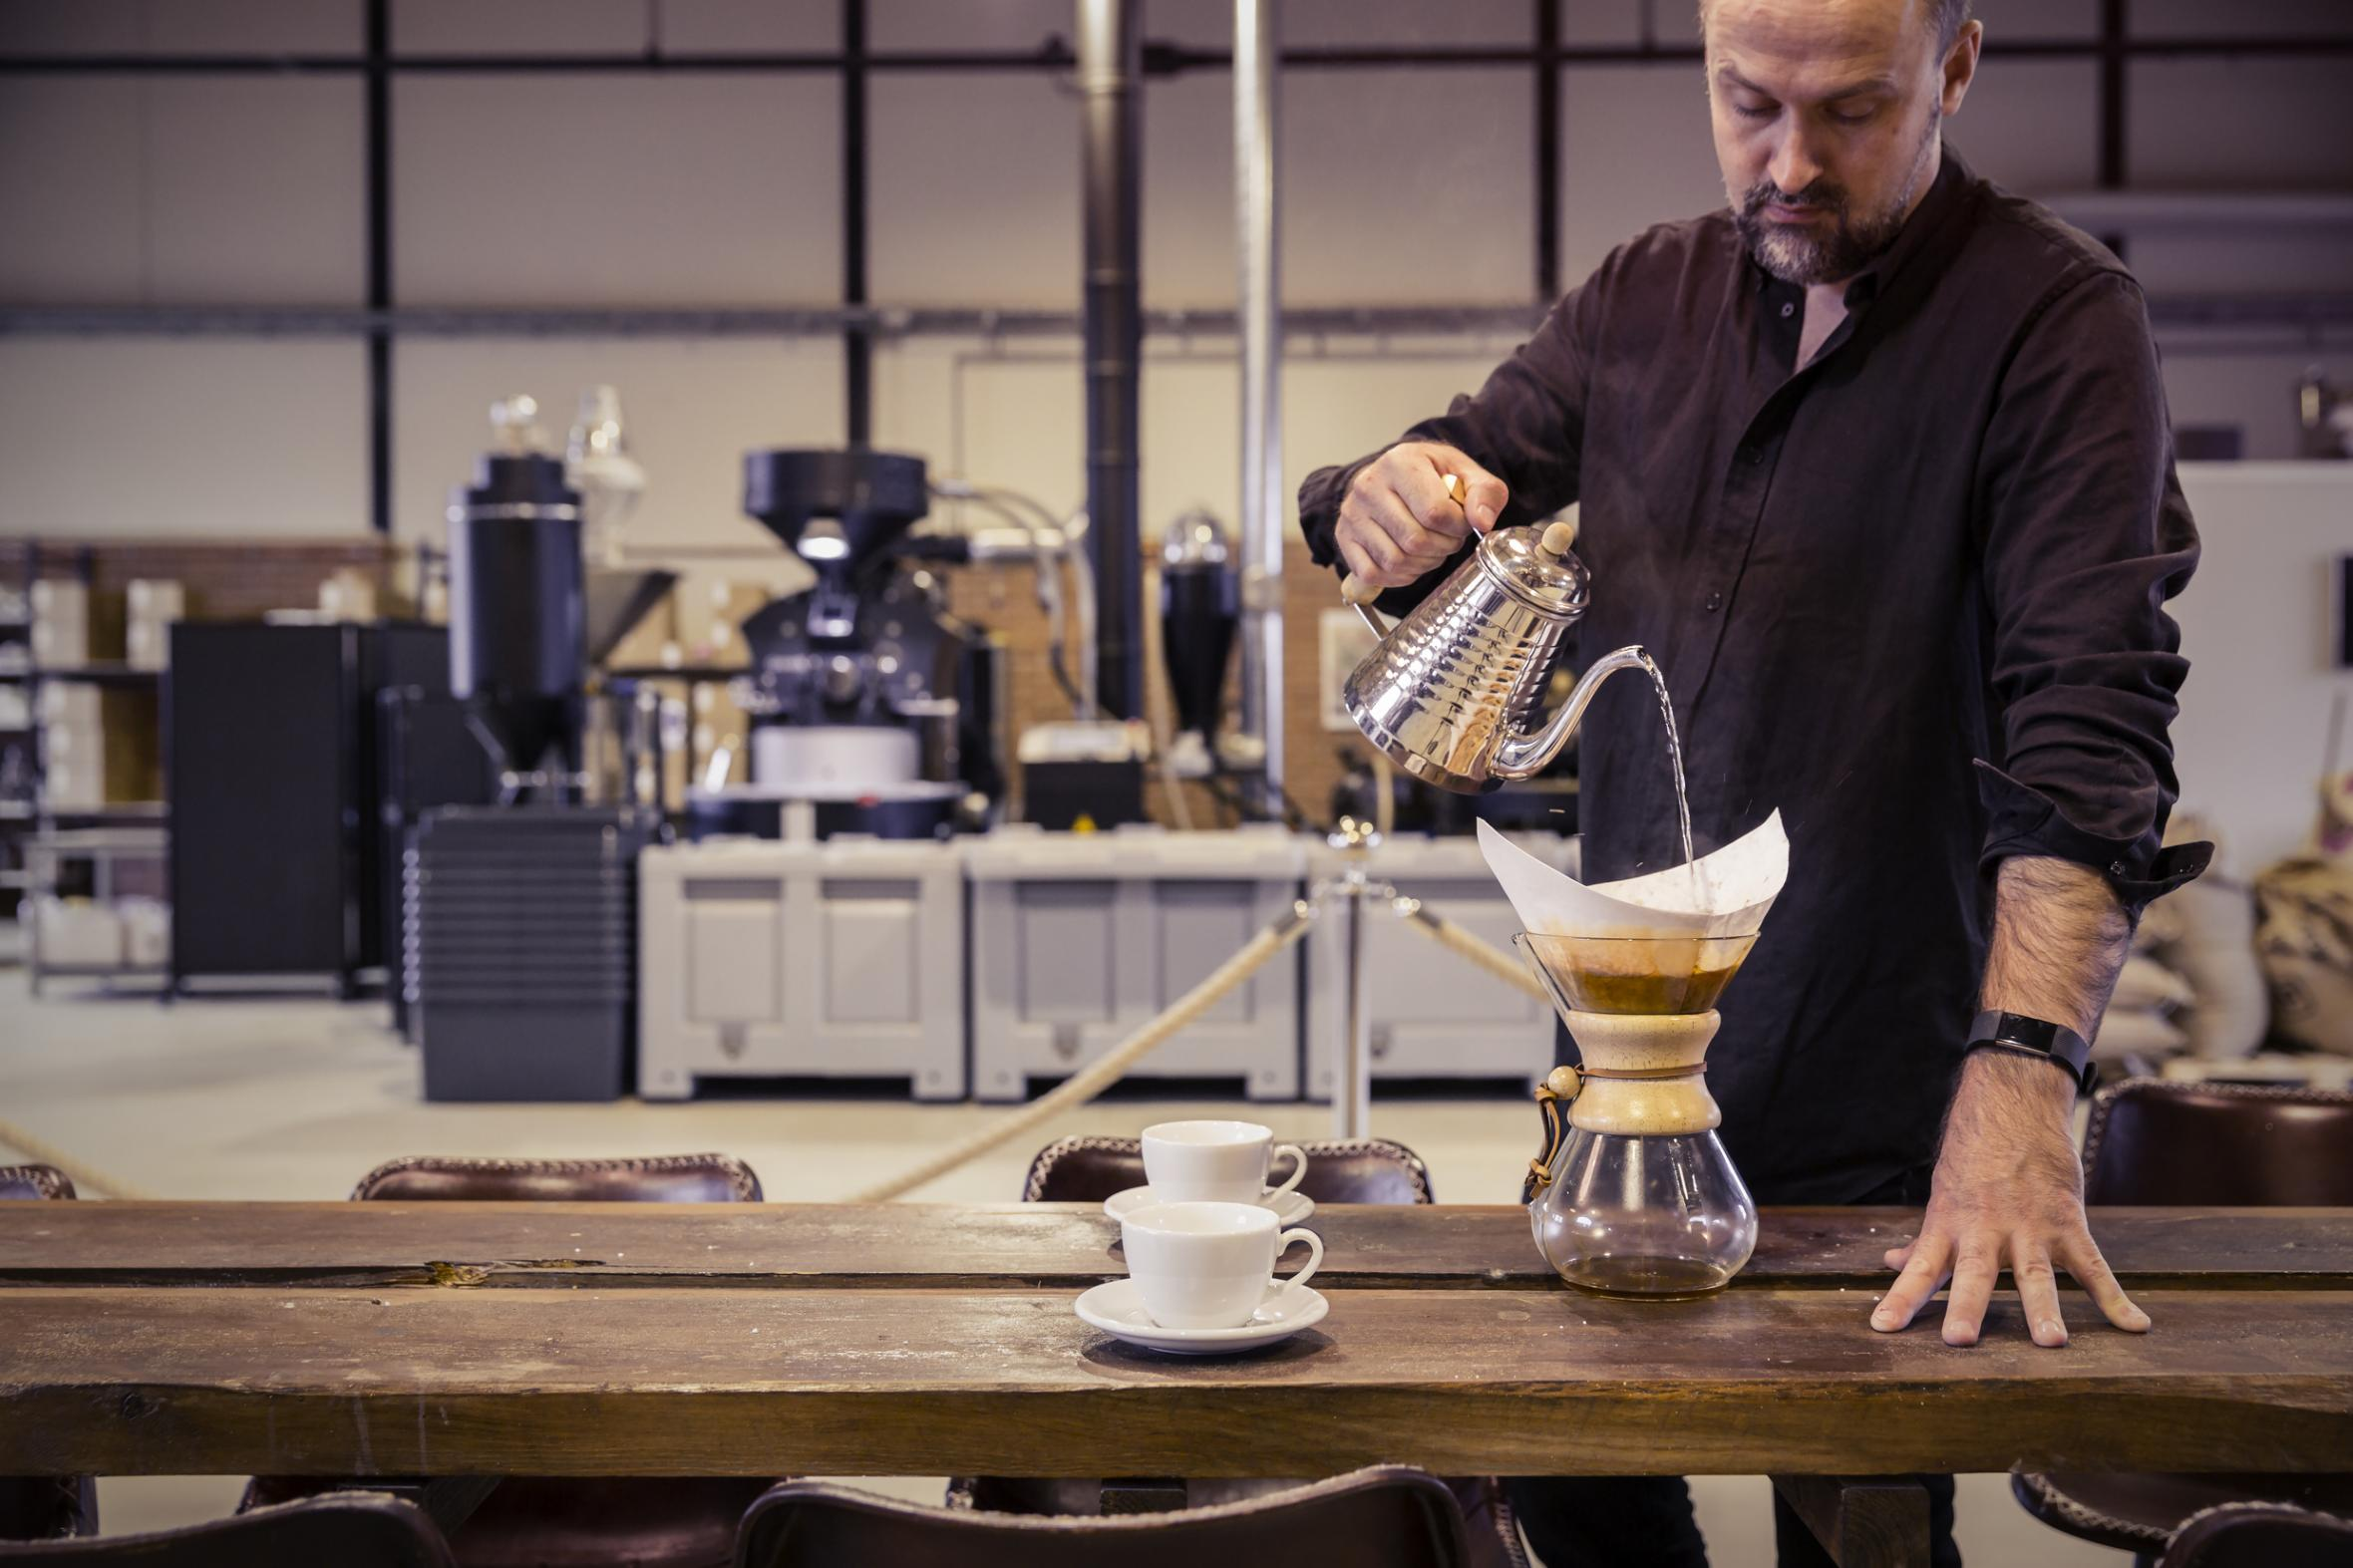 Man pouring coffee in decanter on wooden table